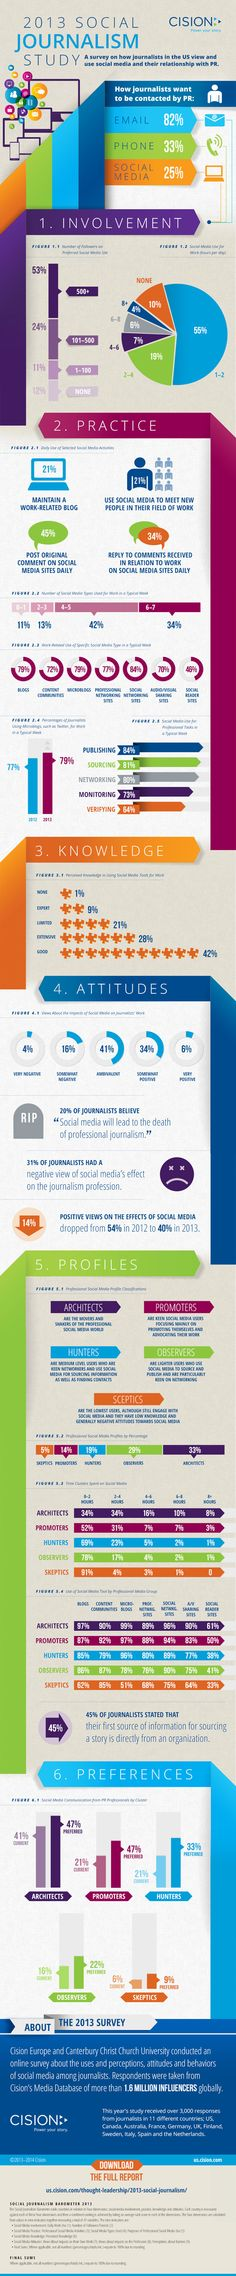 2013 Social Journalism Infographic